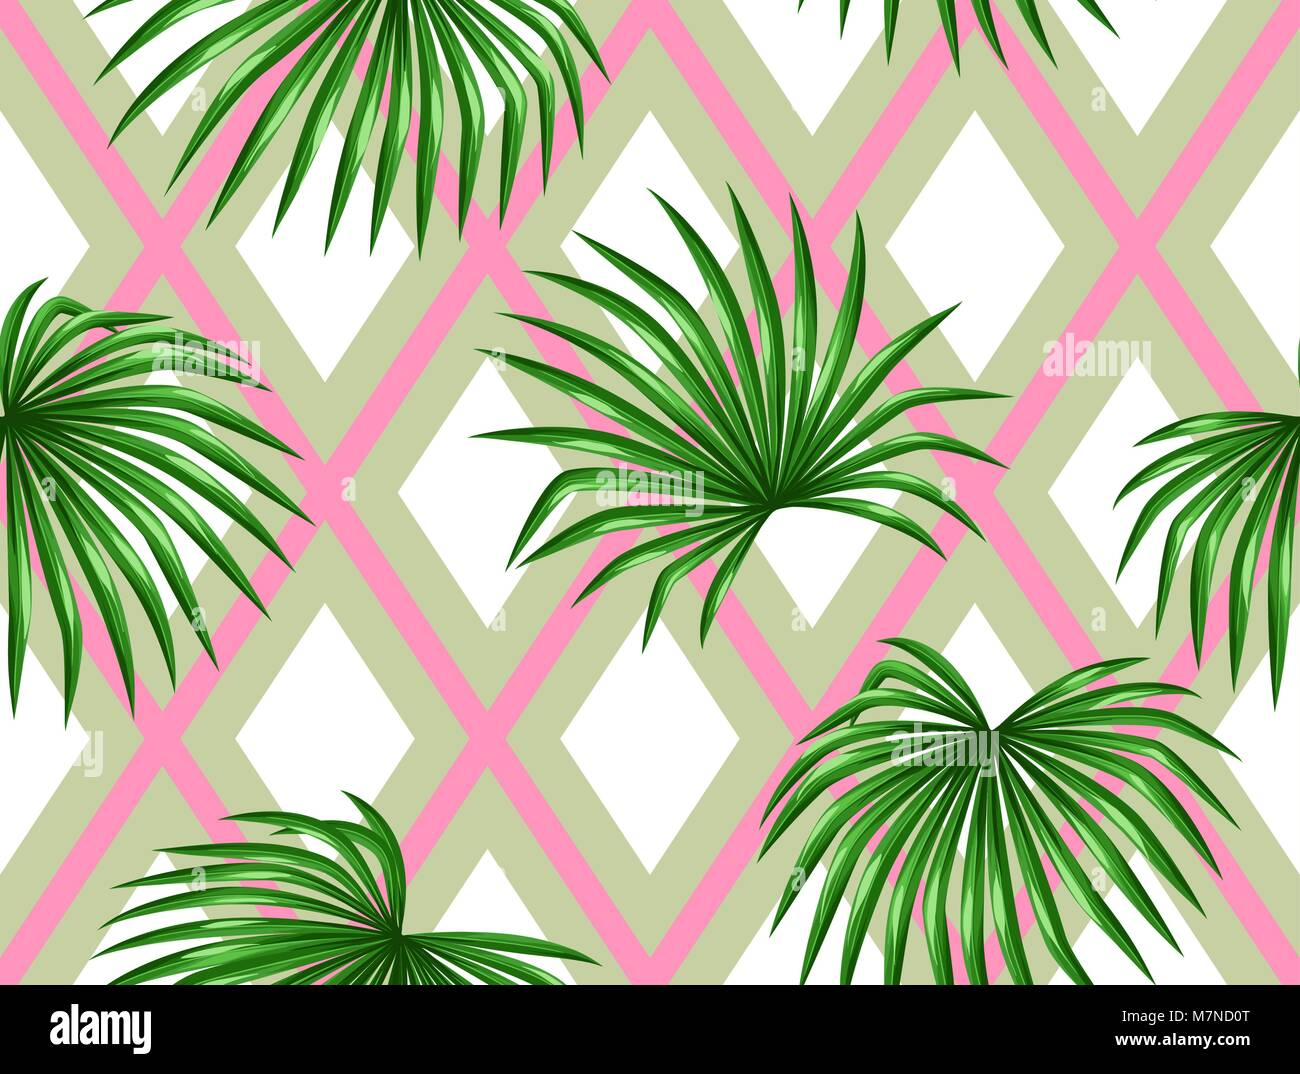 Seamless Pattern With Palms Leaves Decorative Image Tropical Leaf Of Stock Vector Image Art Alamy Paper tropical leaves decorations are stunningly in demand. alamy